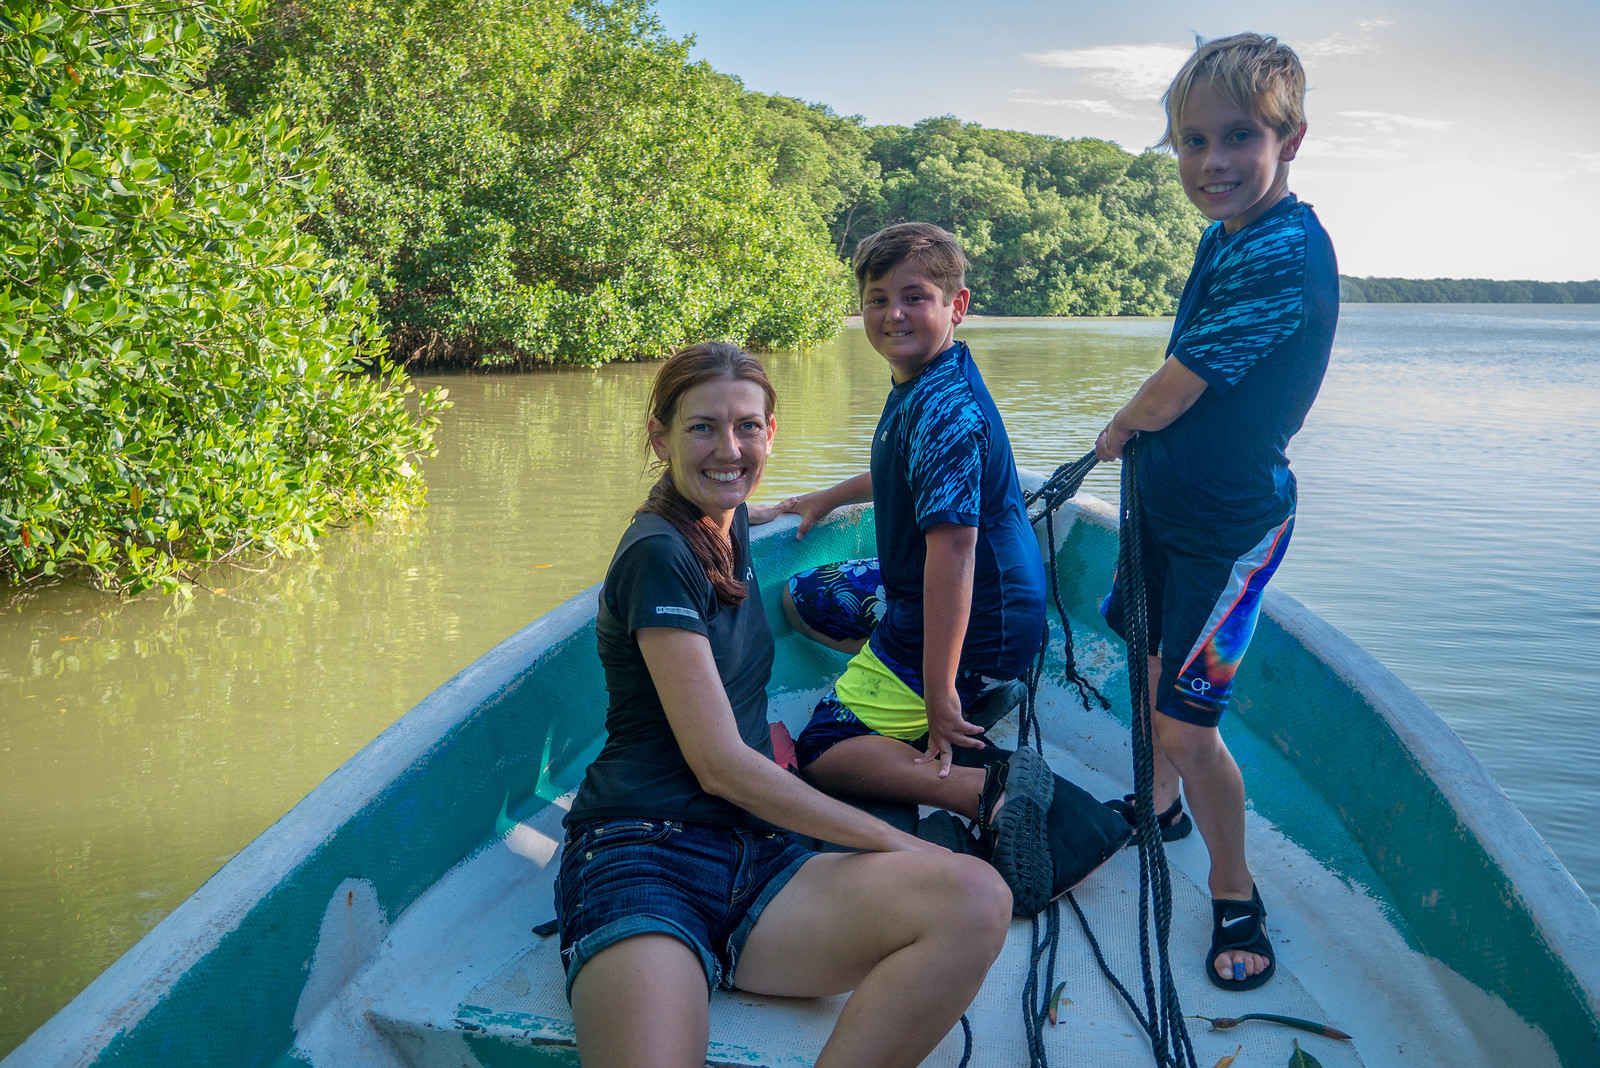 Road tripping the Yucatan with two kids includes boat rides!